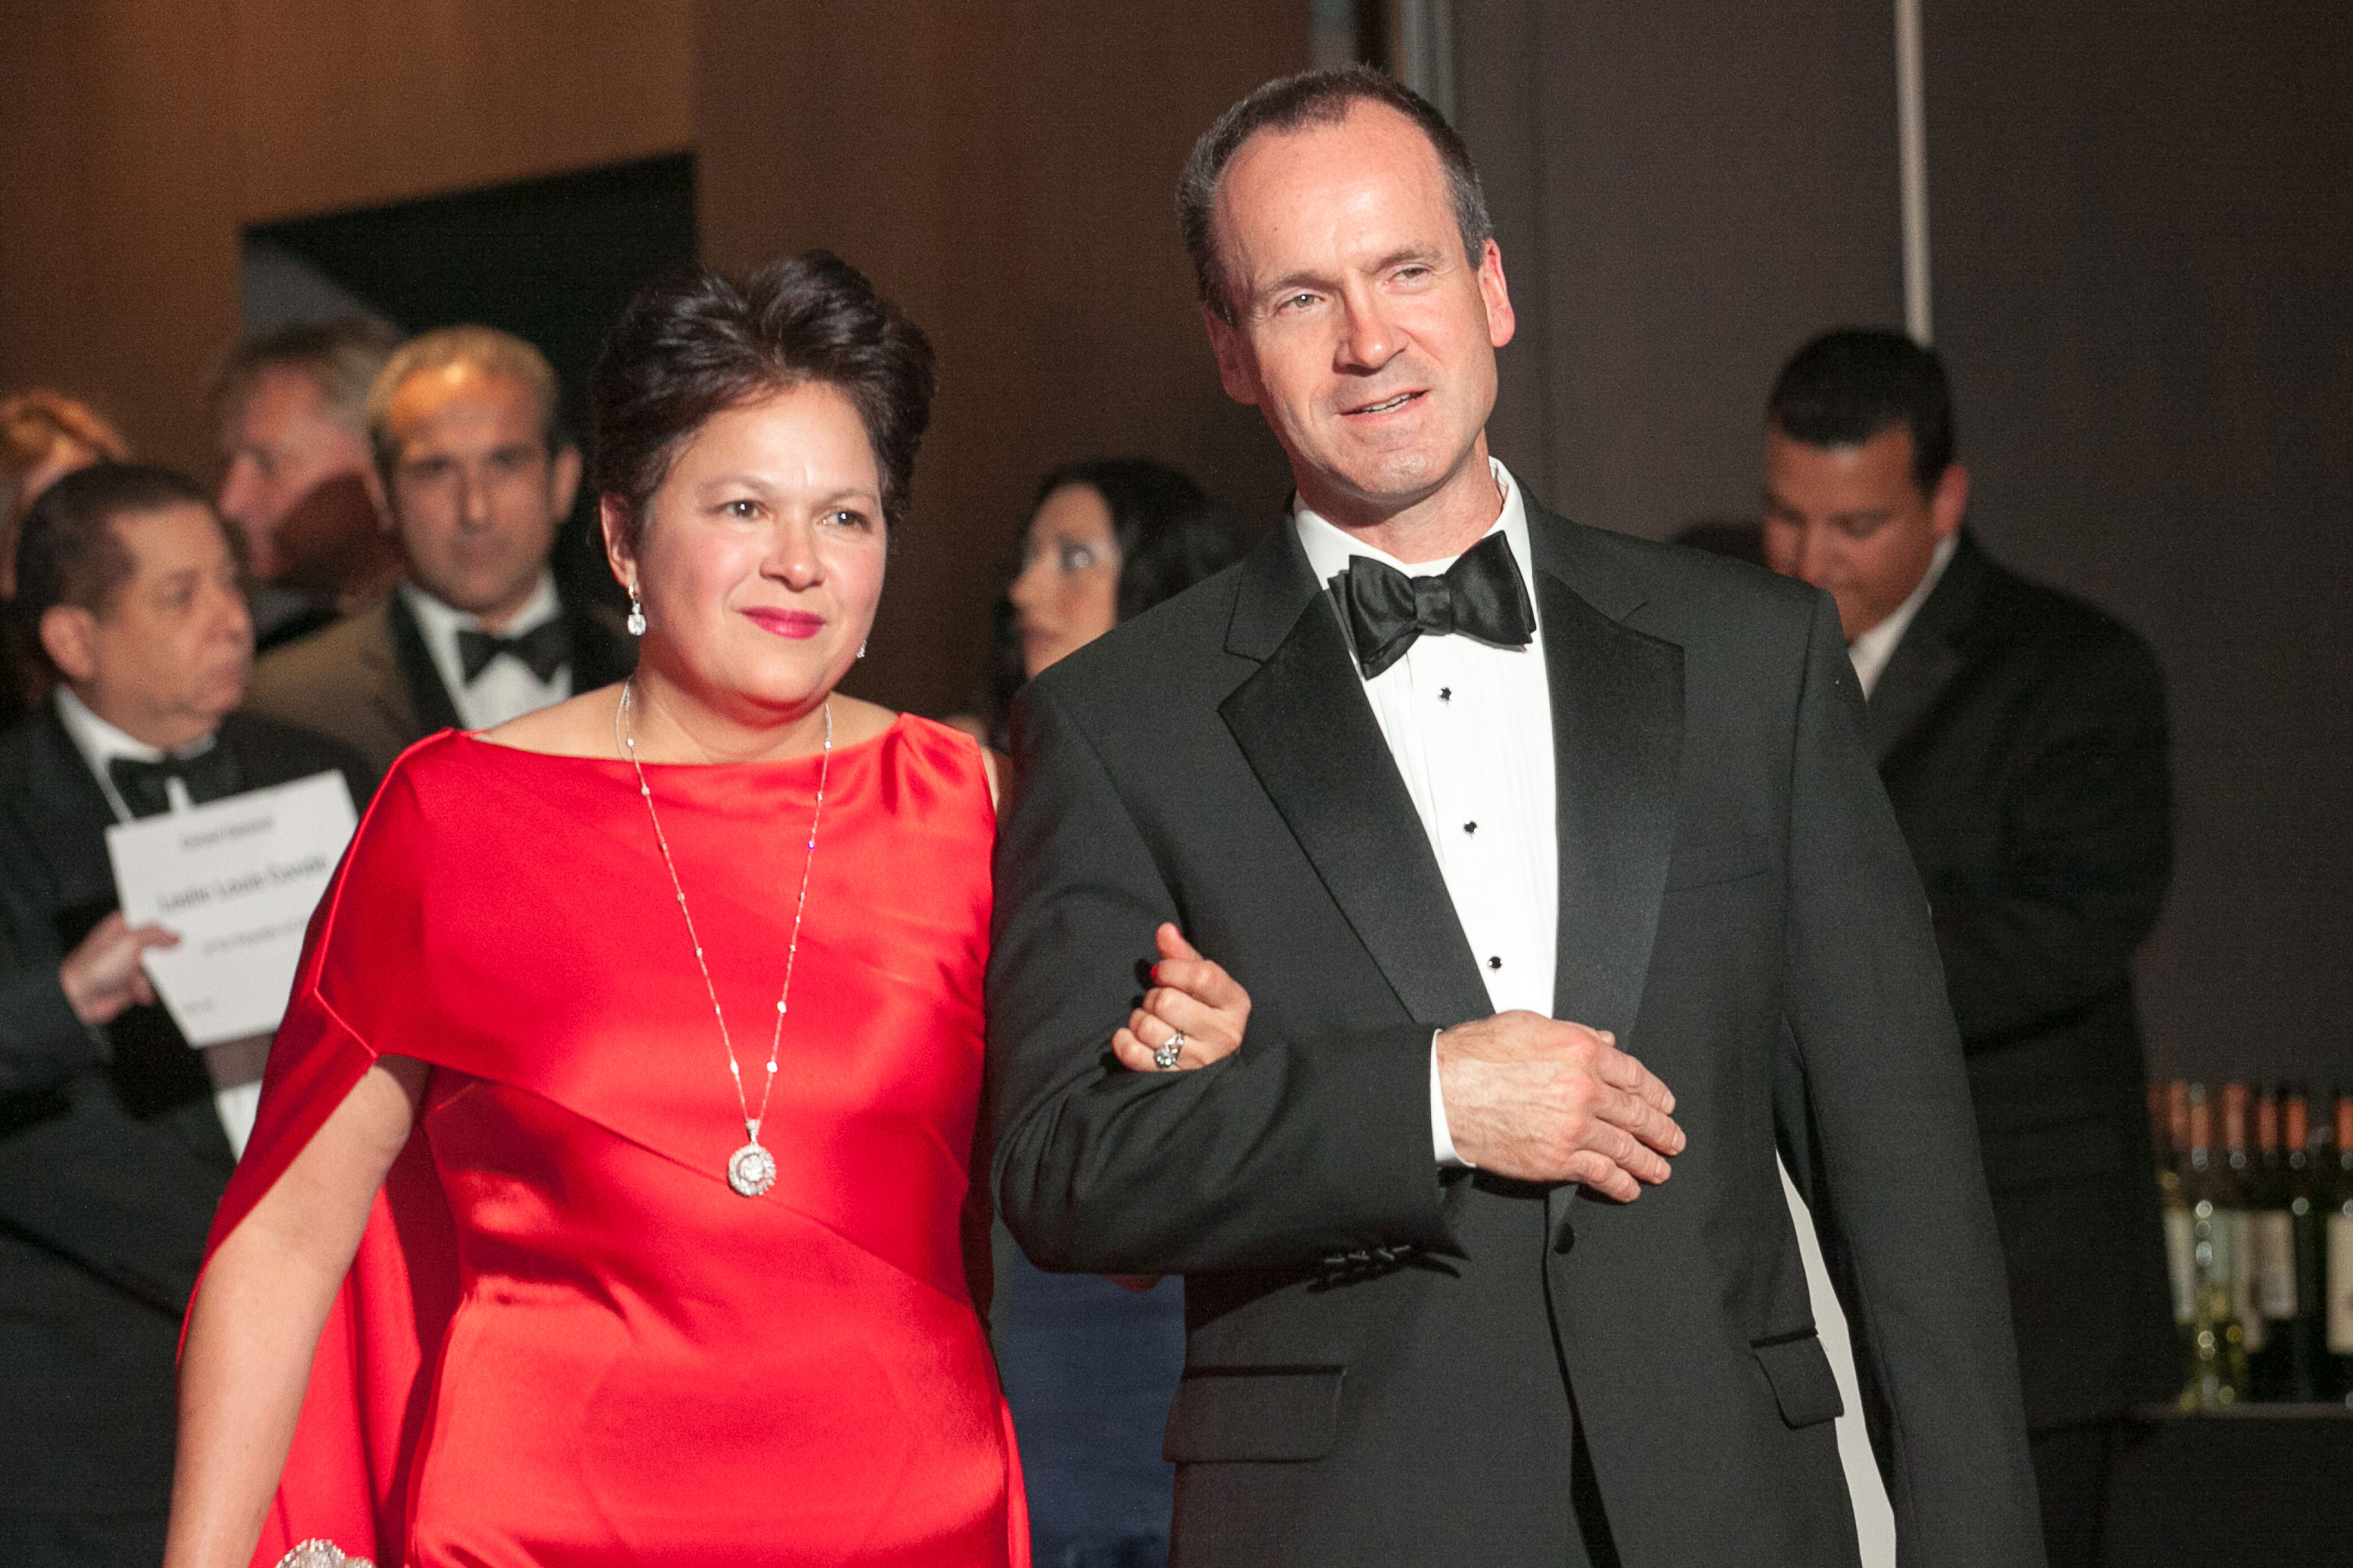 2014 chicago consular corps gala chicago sister cities this year the chicago consular corps honored glenn tilton retired chairman of the board united continental holdings inc the prestigious global